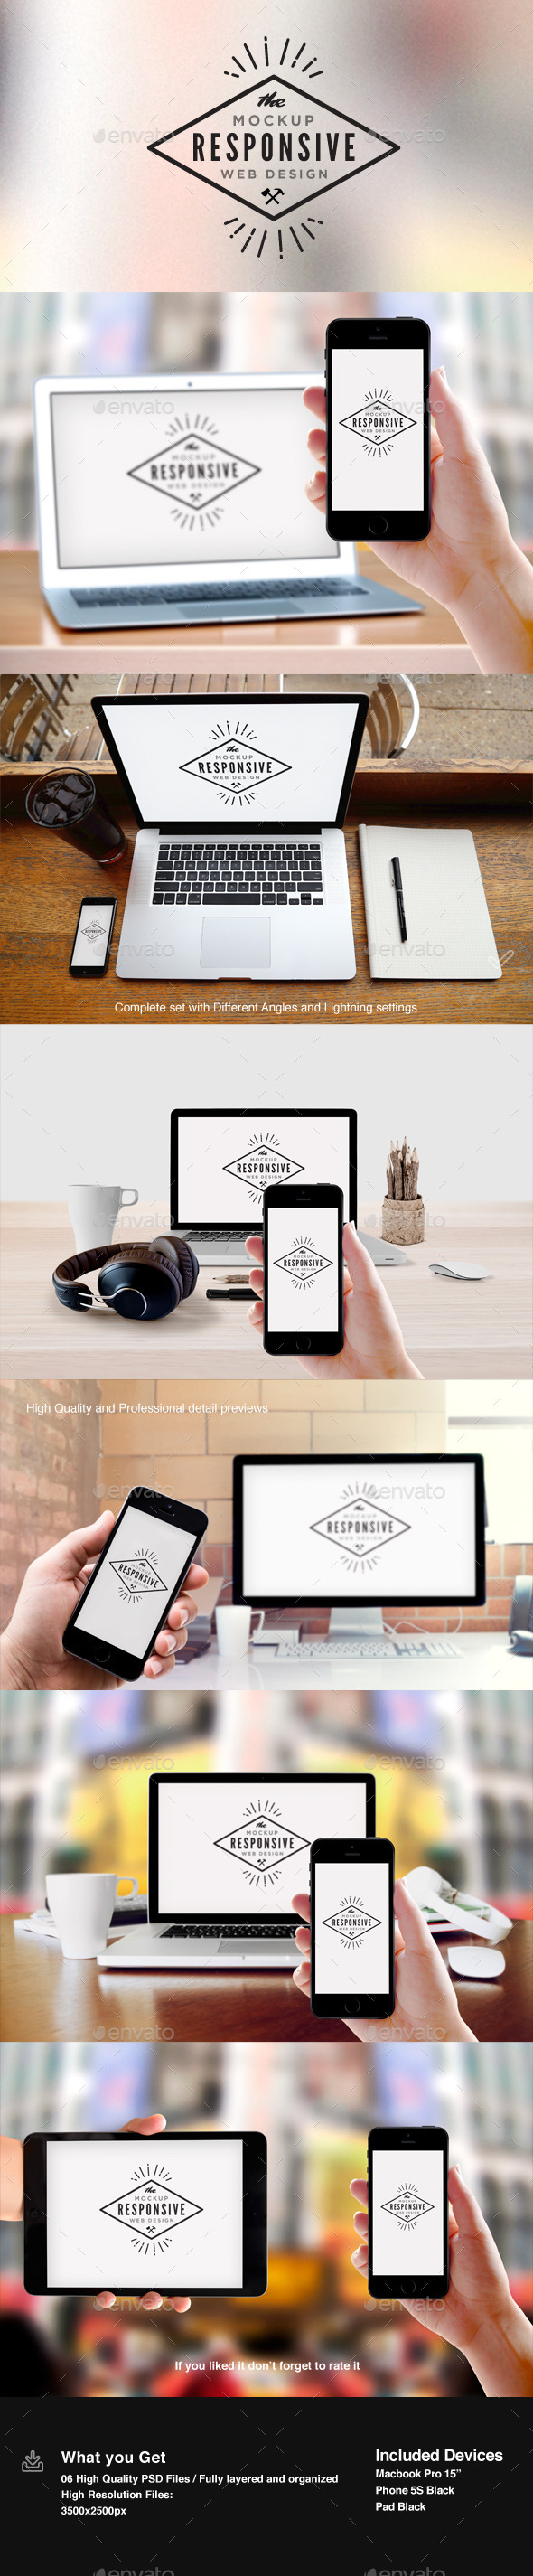 GraphicRiver Responsive Design Screen Mock-Up 10930402